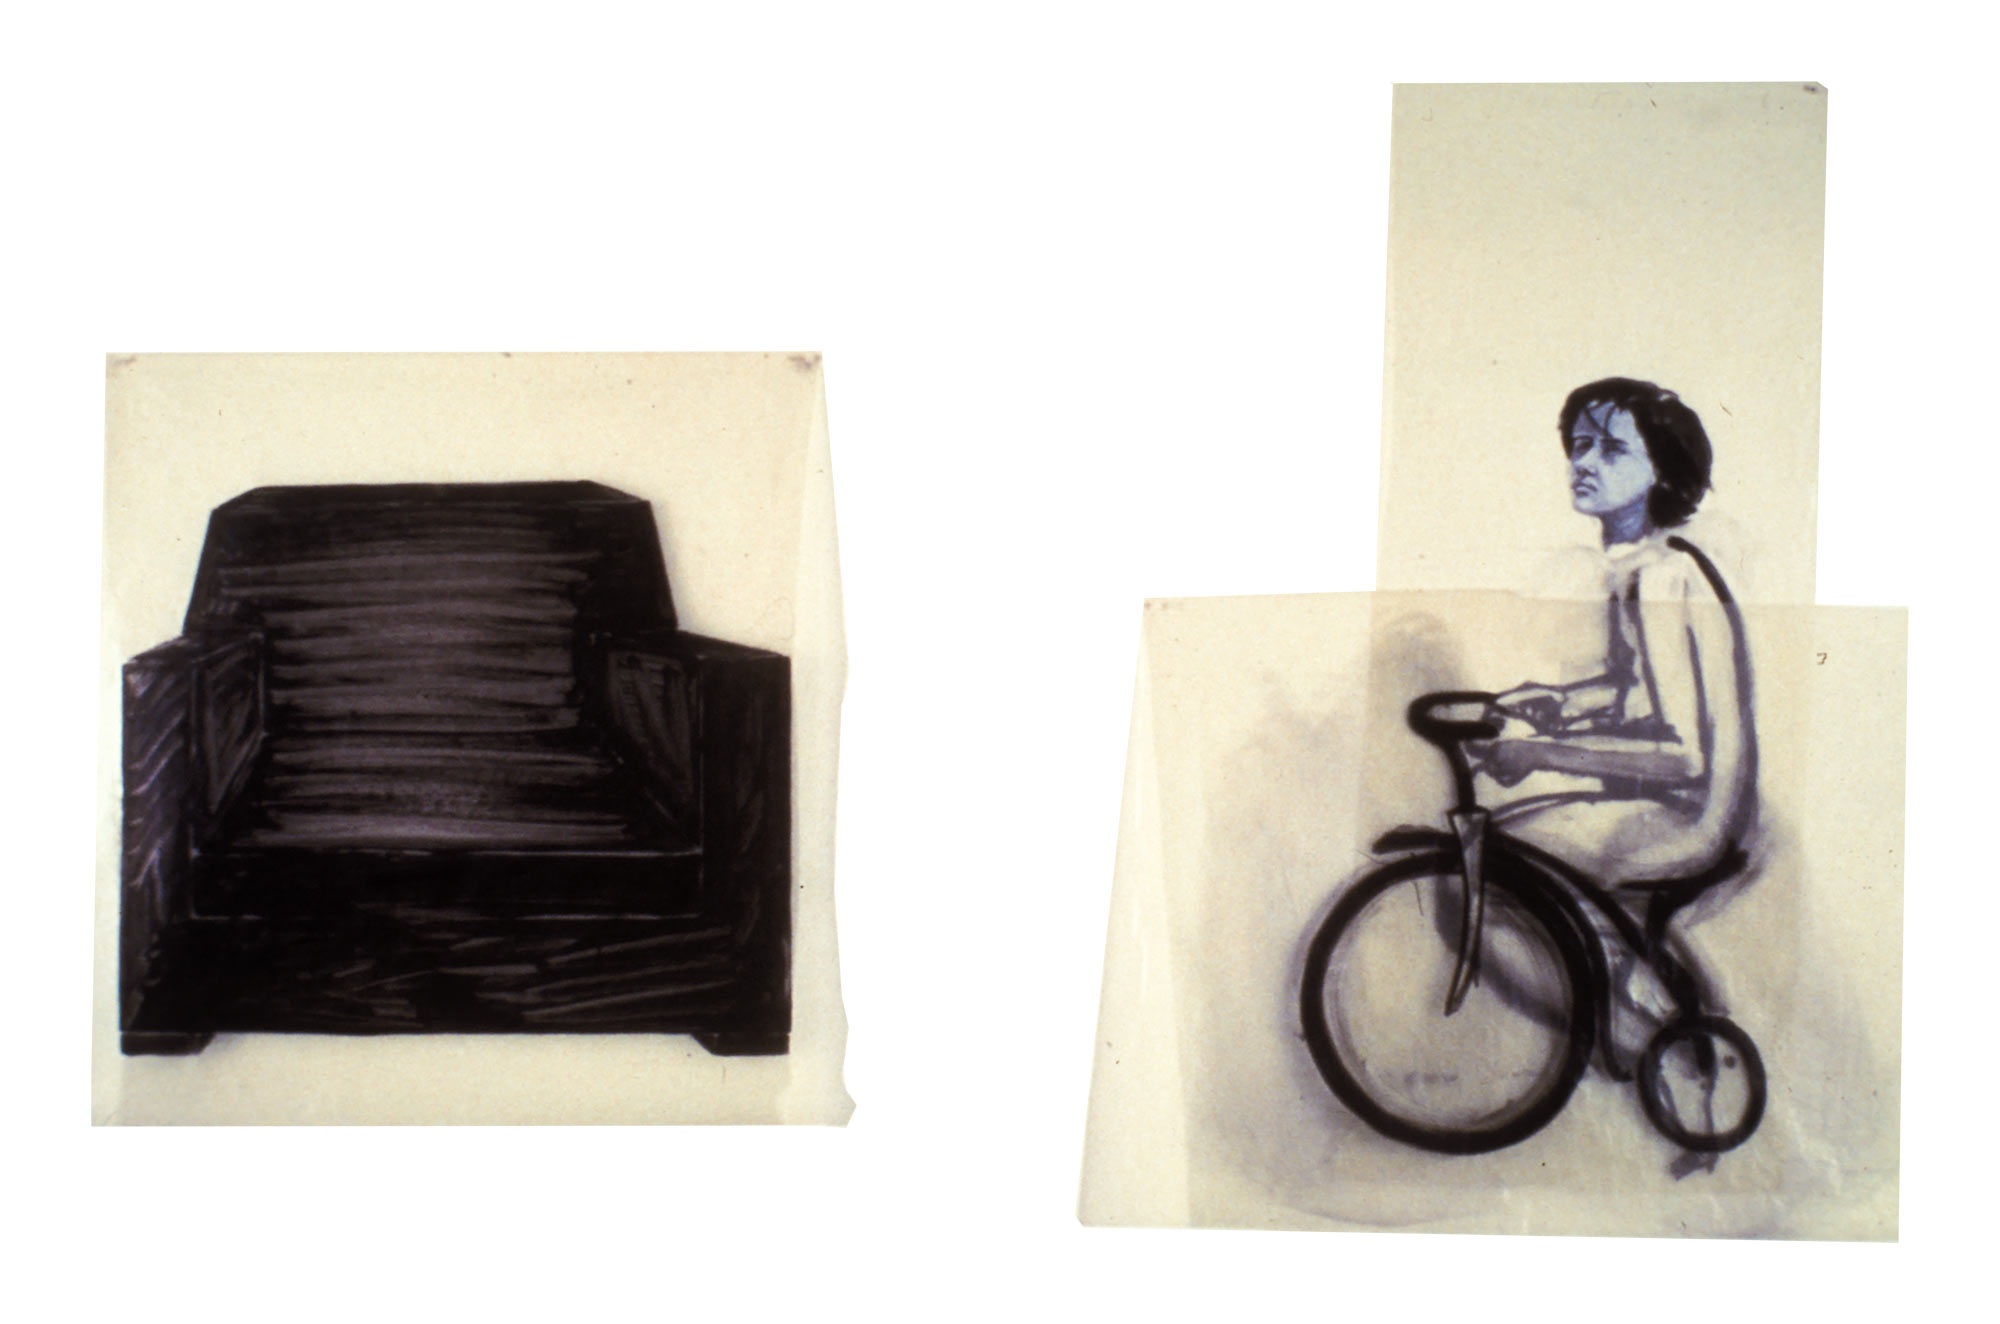 Family (boy on tricycle and chair), 1977. Oil on Glassine.